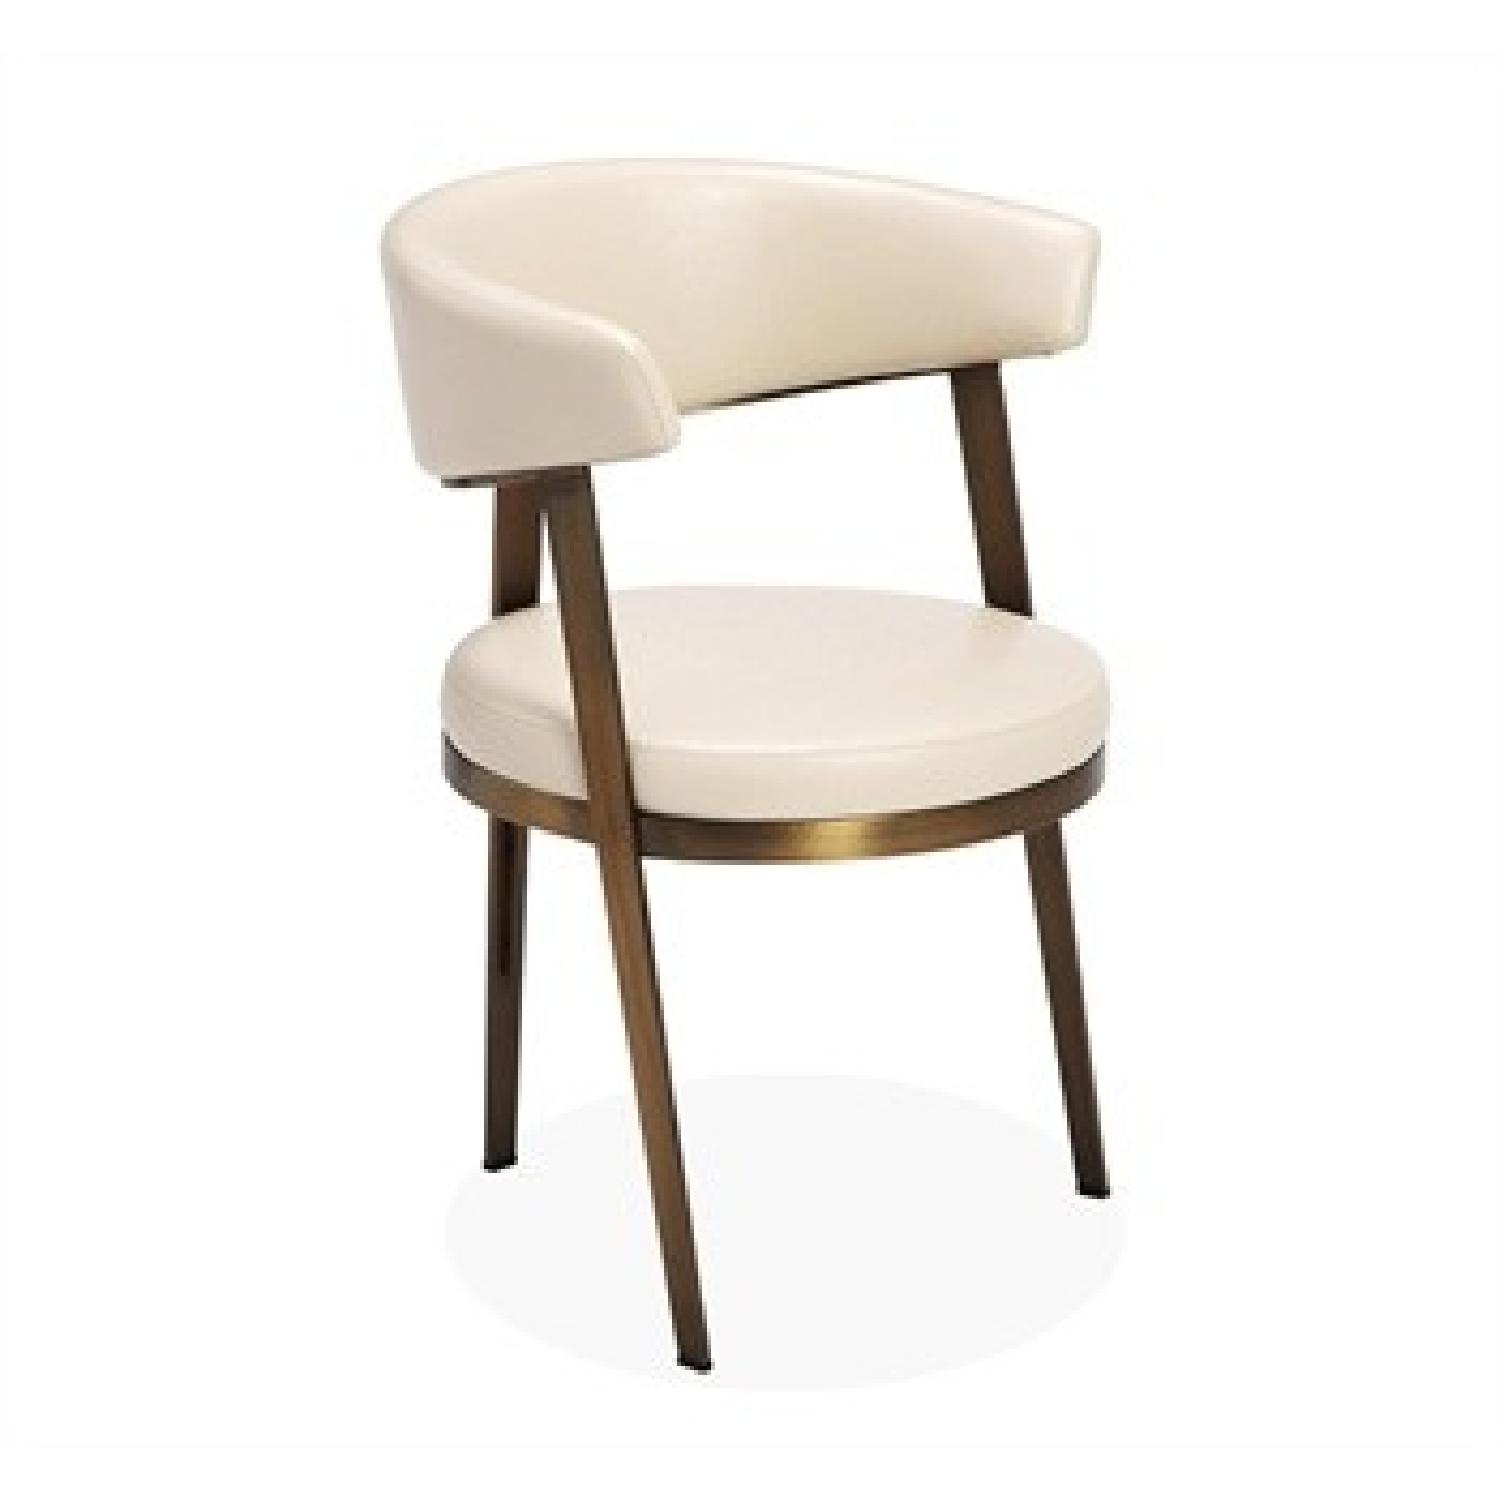 Dining Chair Dimensions Interlude Home Adele Dining Chairs